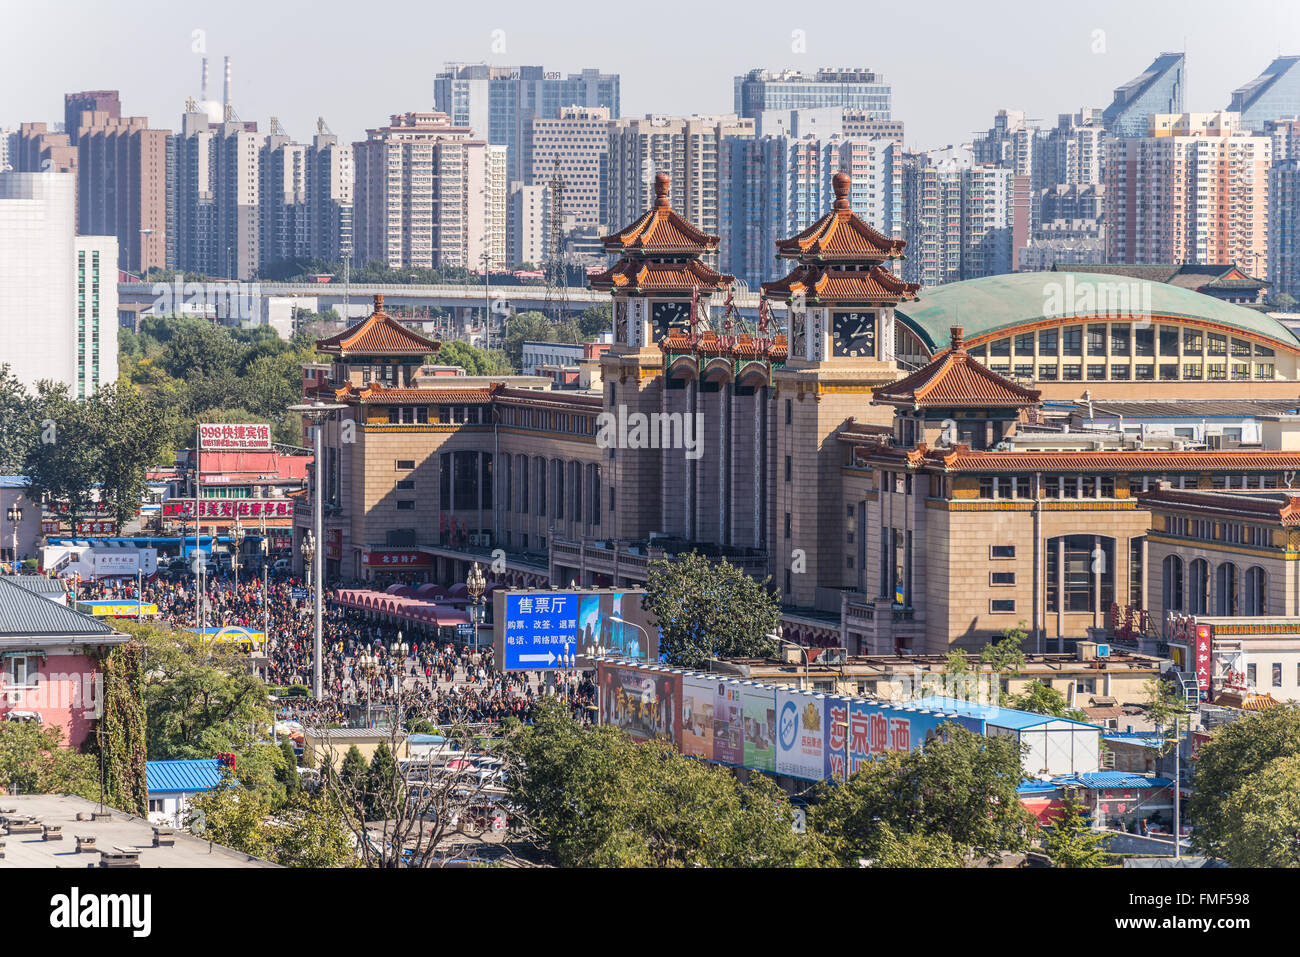 A Lot of people on the square in front of the Beijing Railway Station, Beijing, China - Stock Image